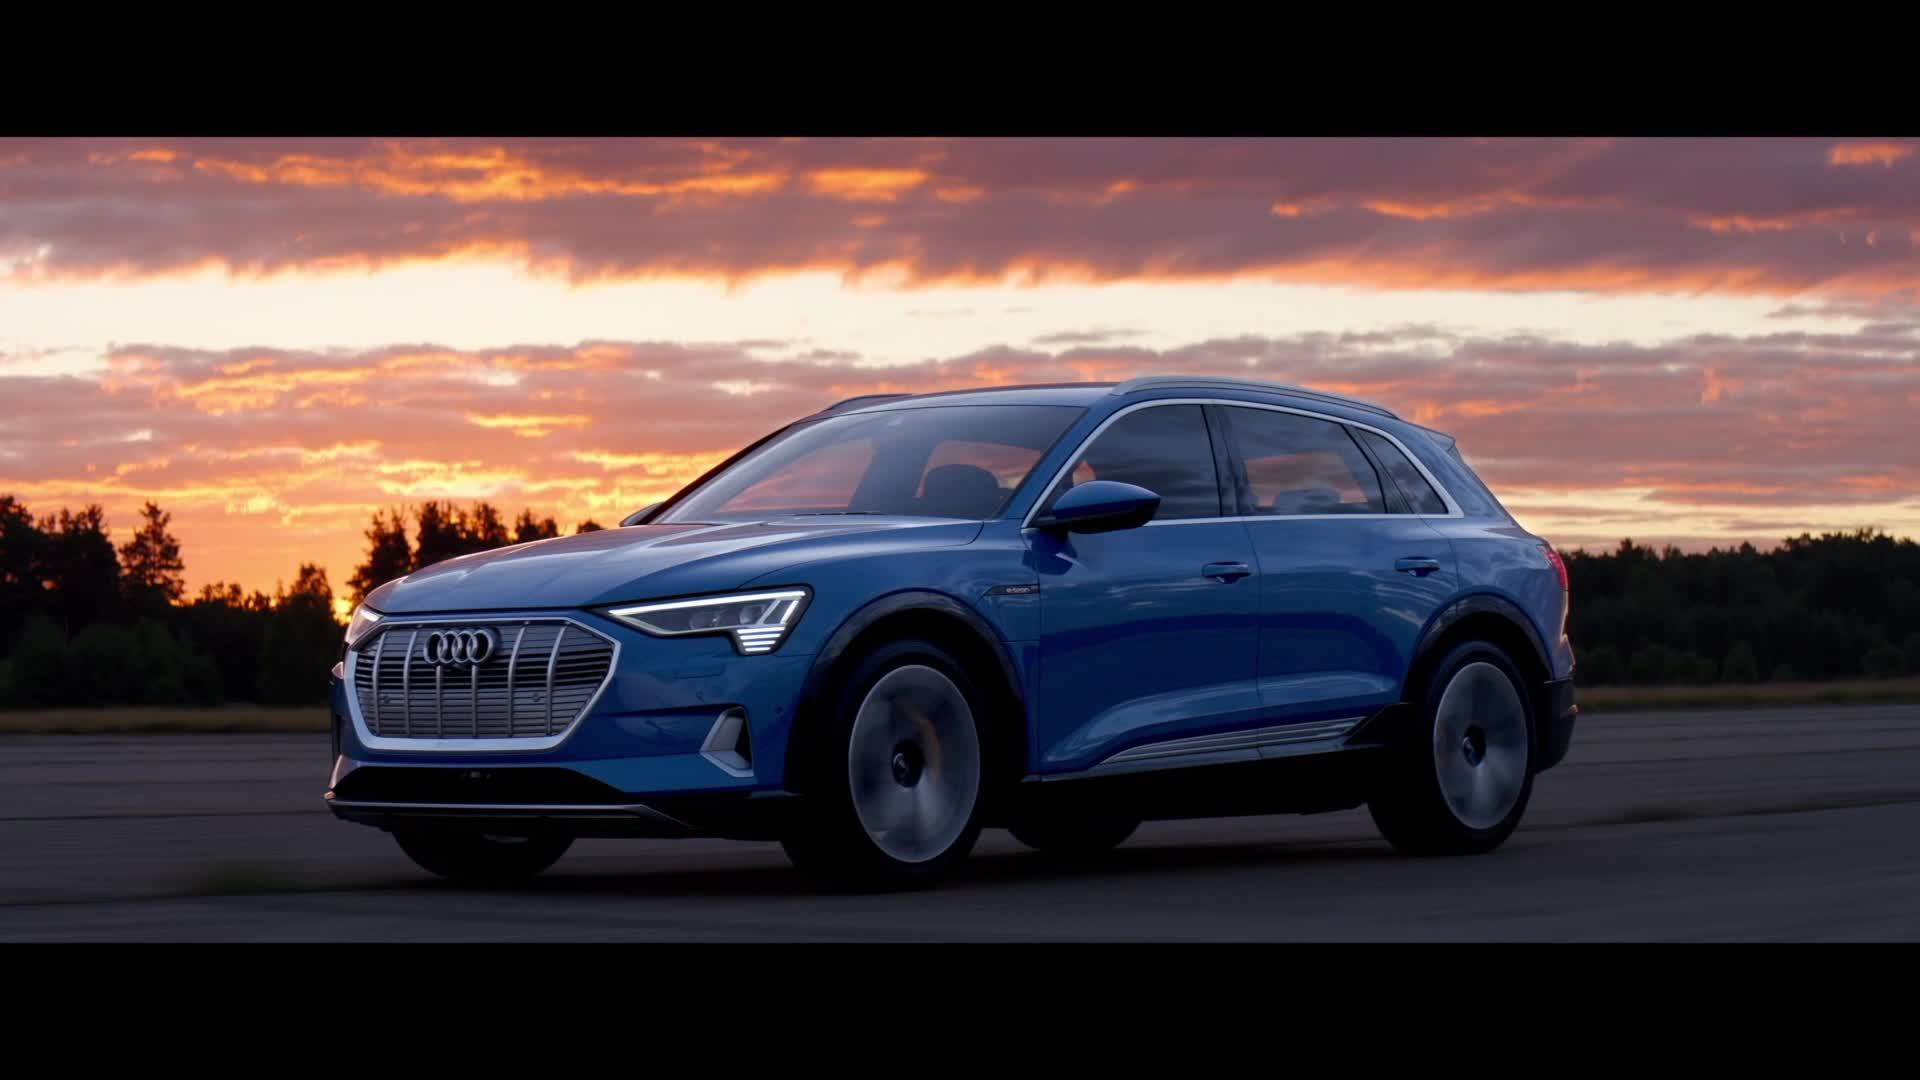 Audi e-tron defined: The End of the Beginning